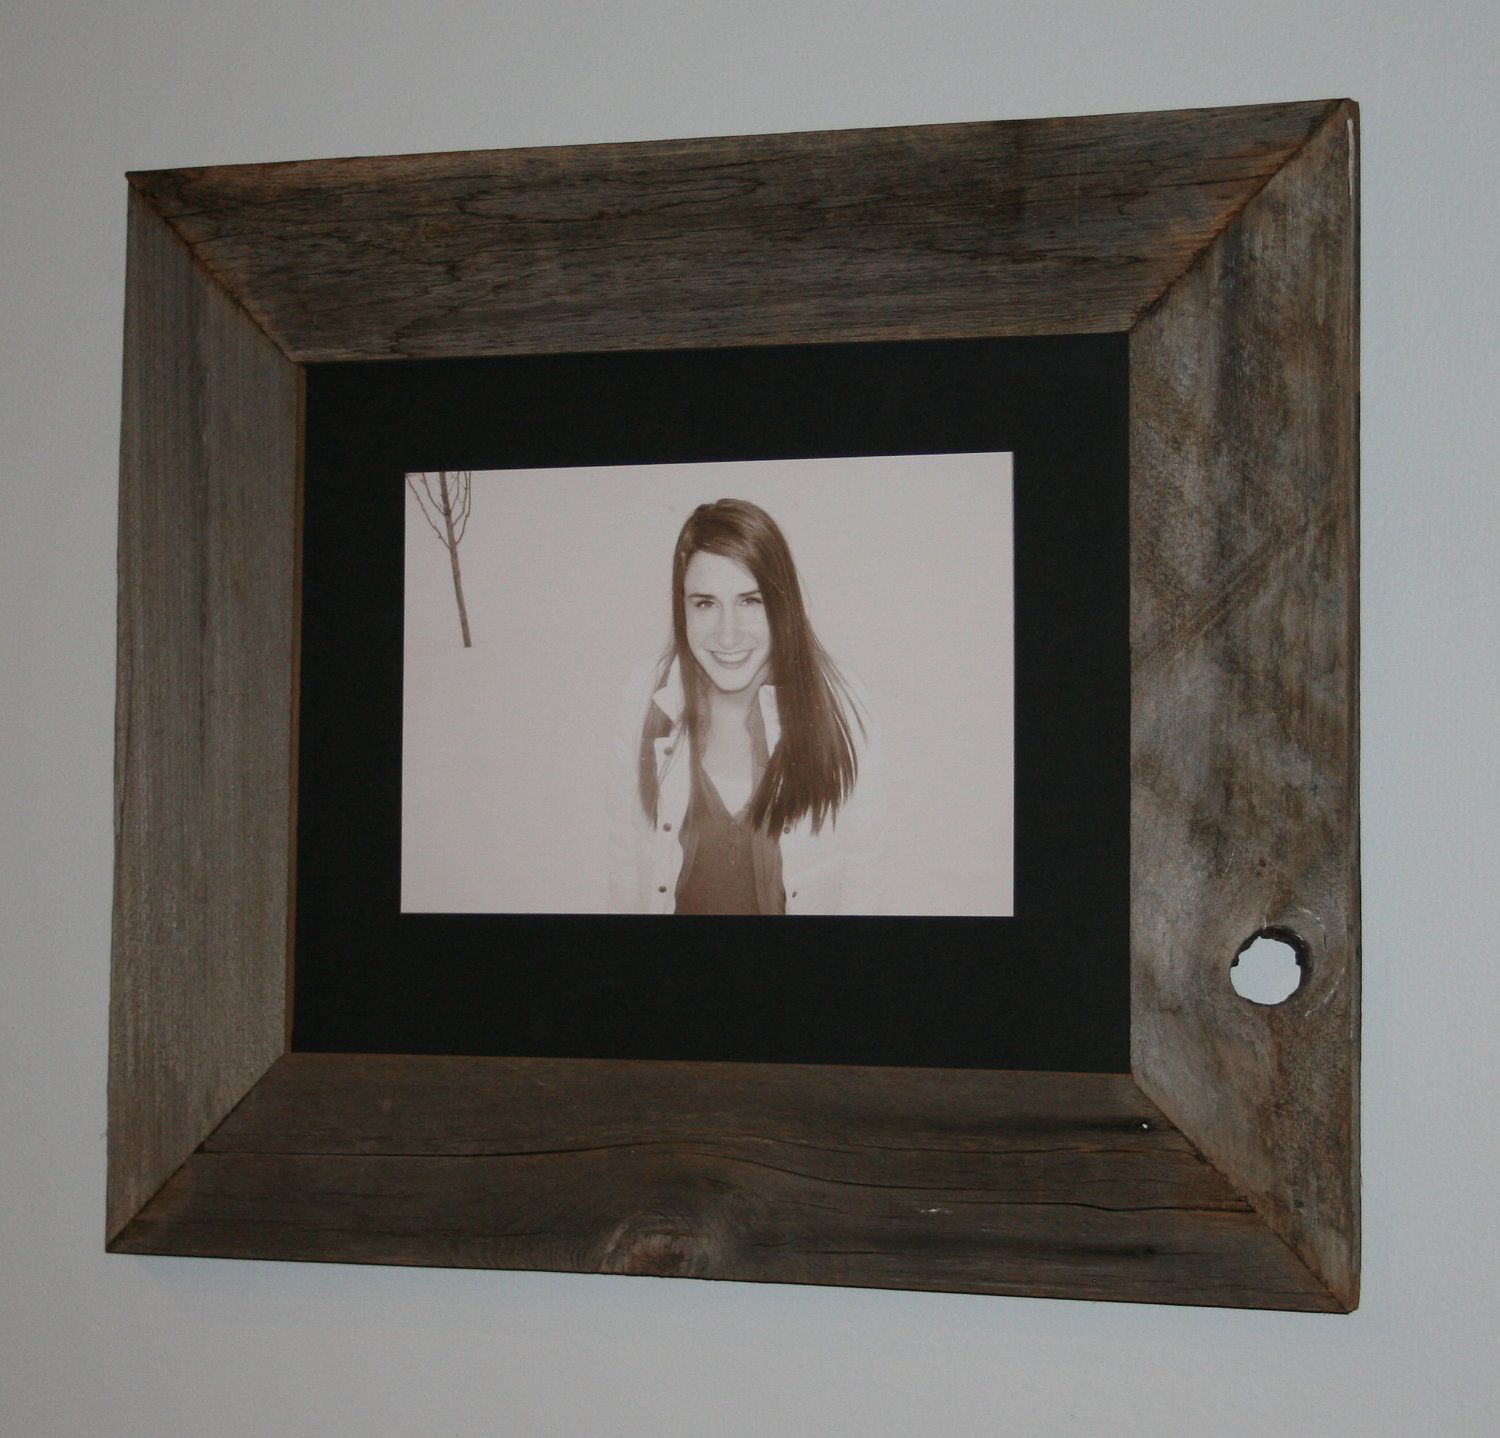 11x14 Authentic Barn Wood Picture Frame 15 00 Via Etsy Barn Wood Picture Frames Barn Wood Picture Frames